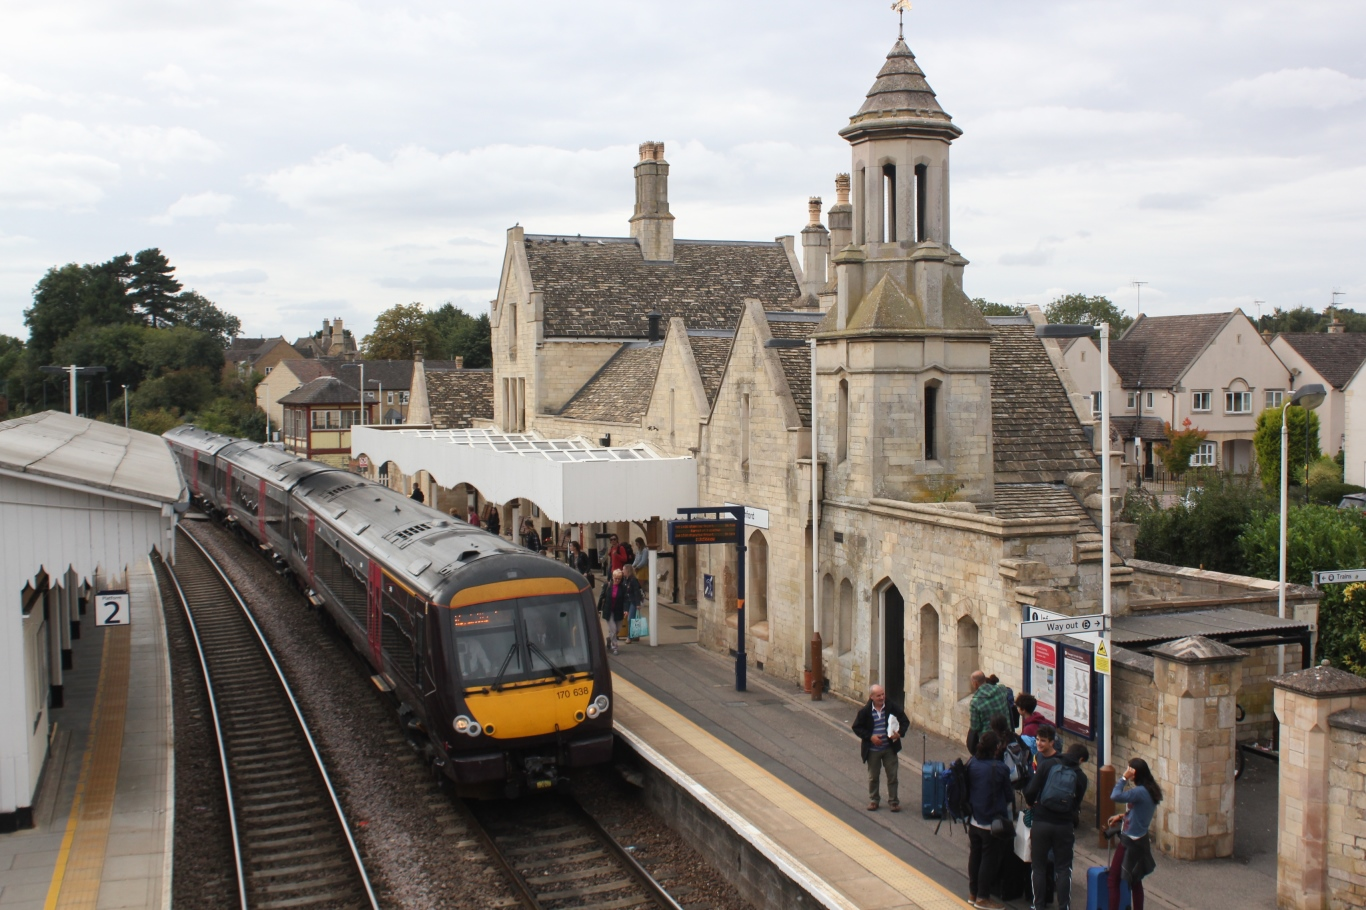 stamford railway station - wikipedia